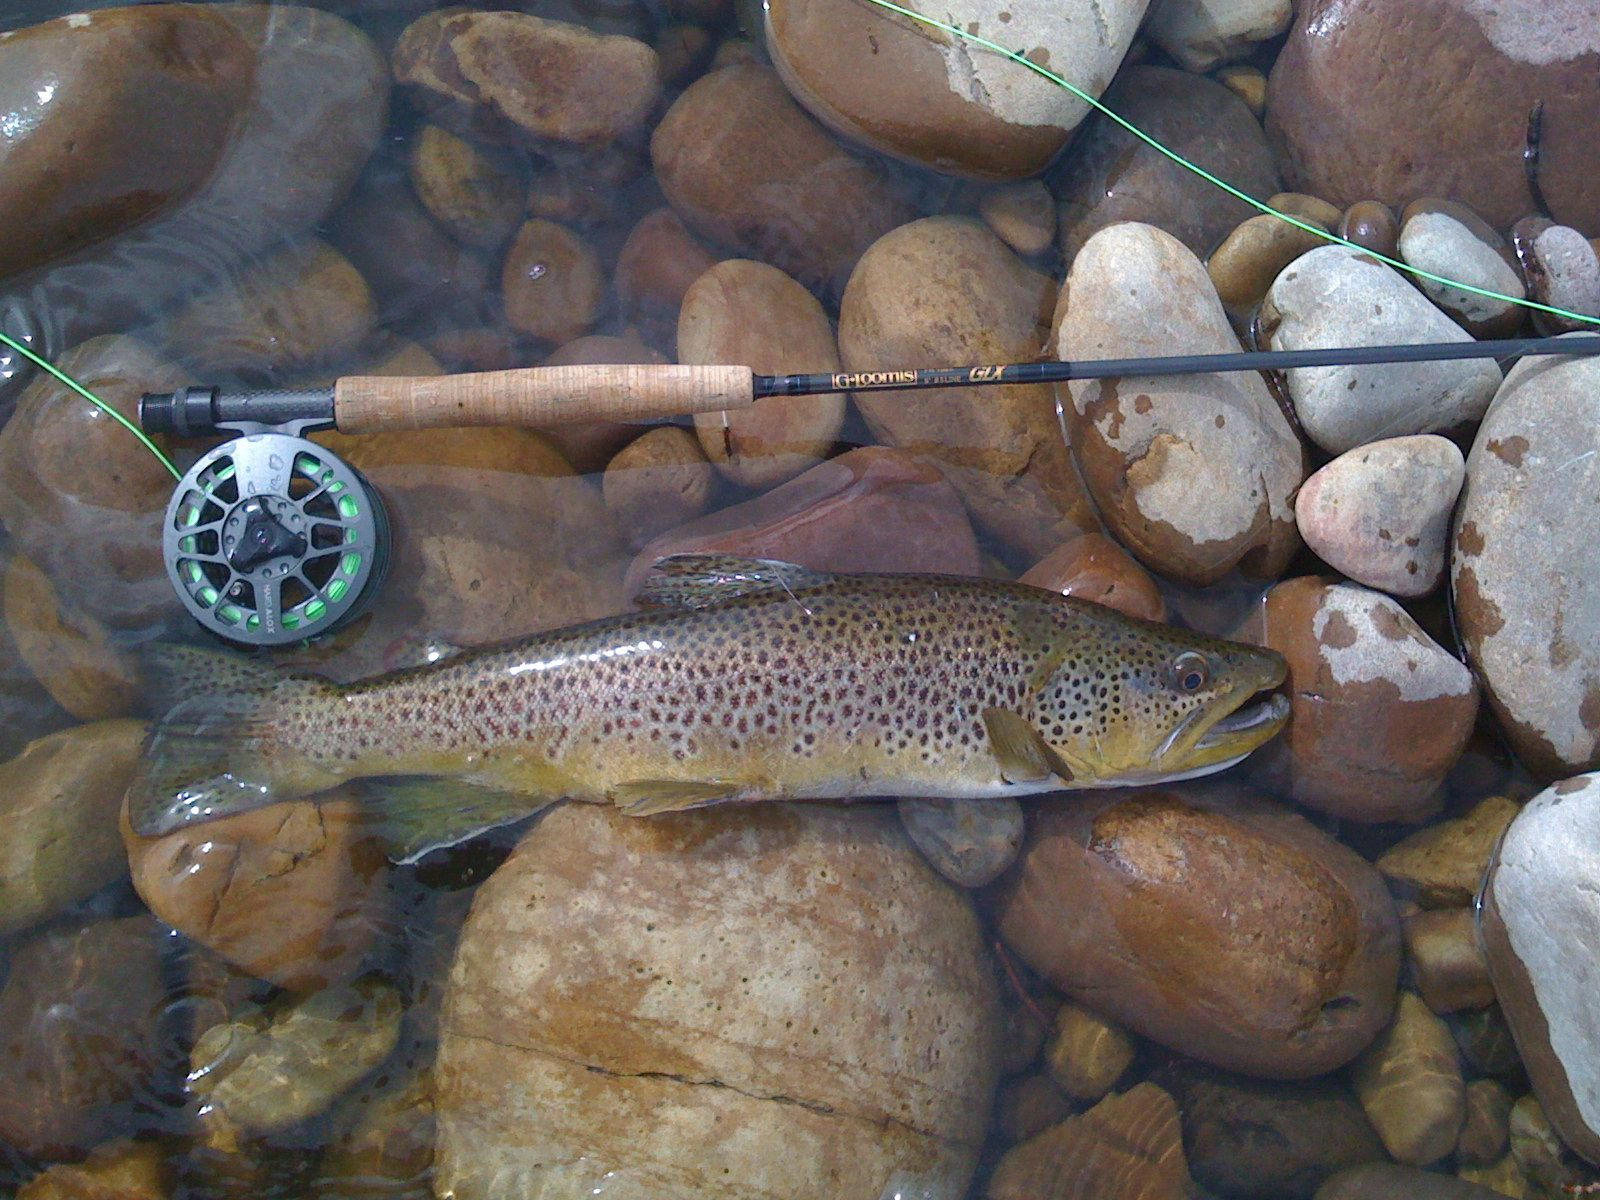 17 best images about fly fishing on pinterest | fly fishing lures, Fly Fishing Bait